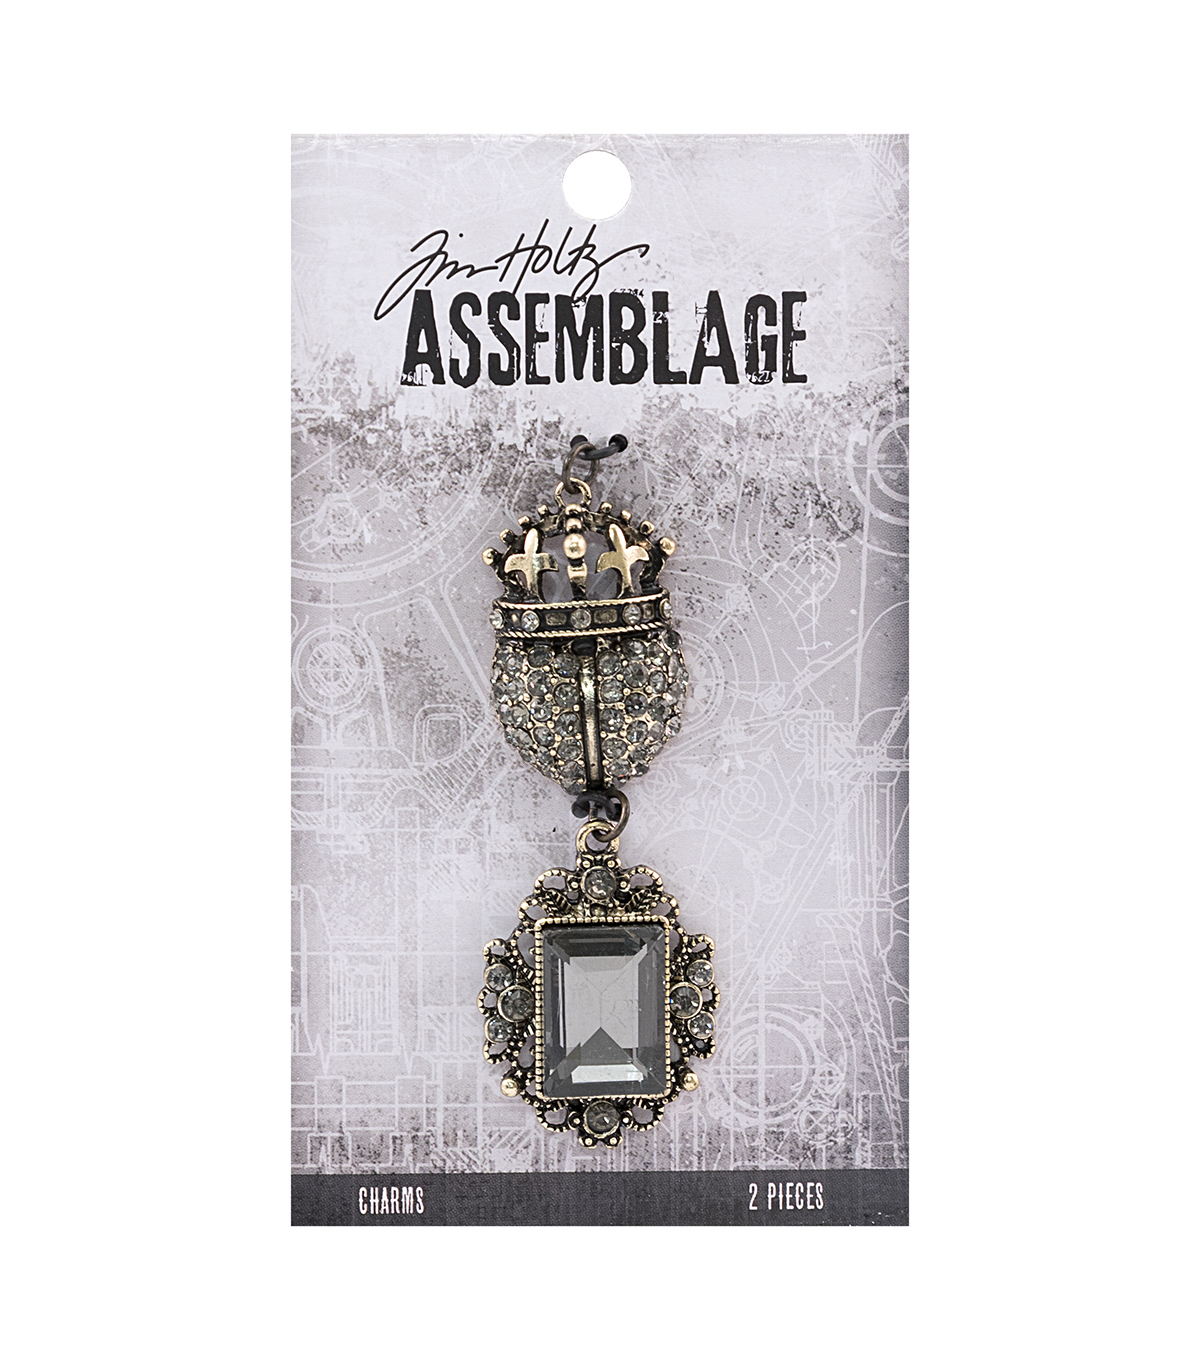 Tim Holtz Assemblage 2 Pack Regal Charms